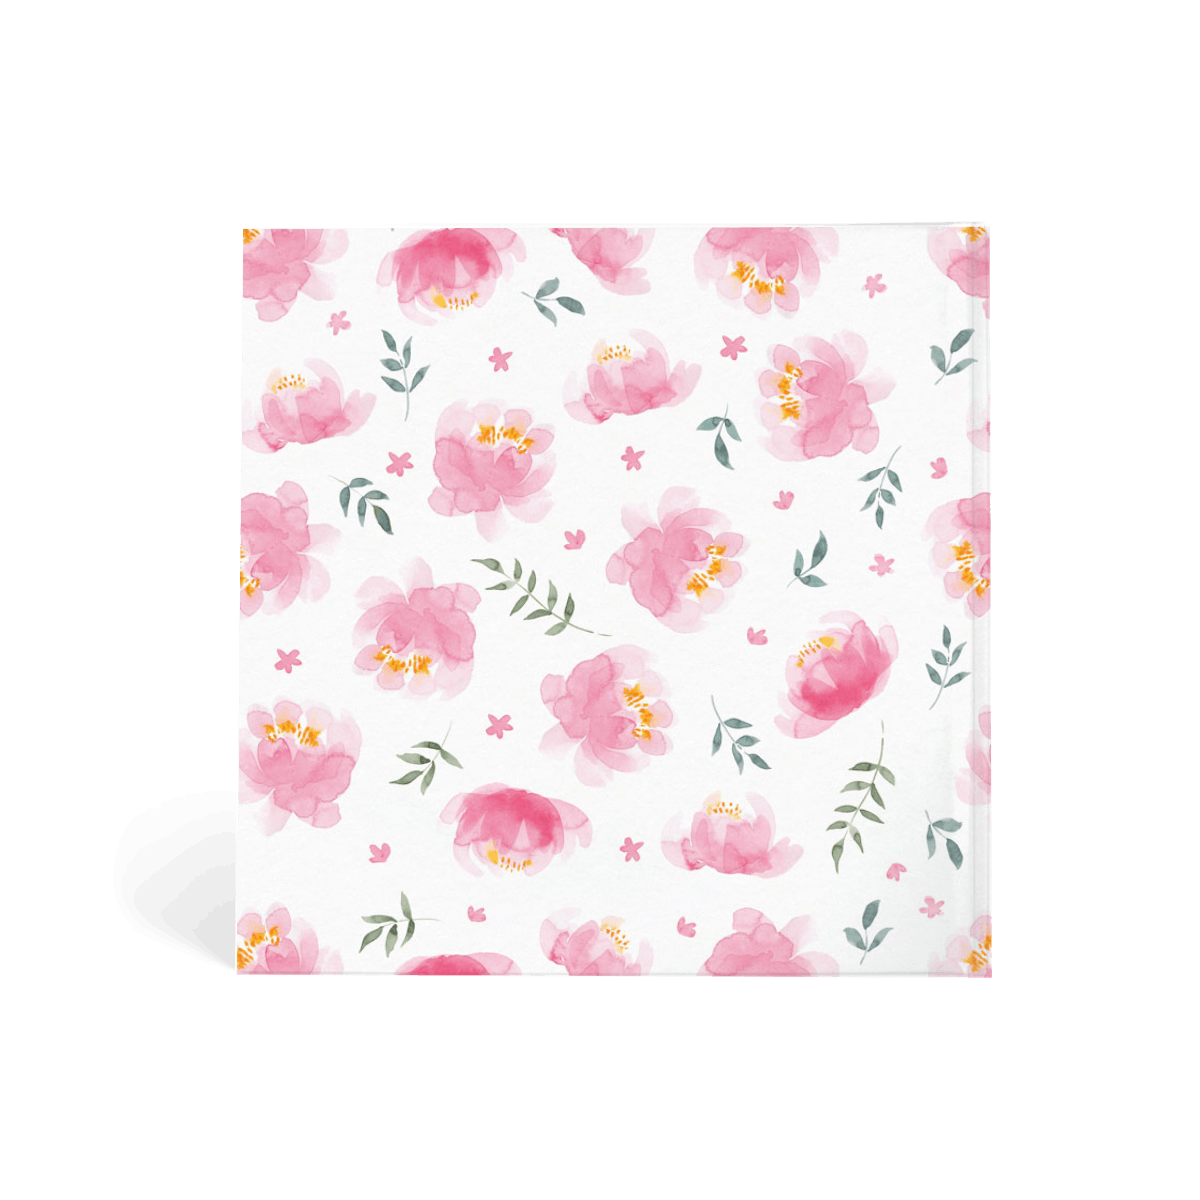 Https%3a%2f%2fwww.papier.com%2fproduct image%2f45246%2f24%2fpeonies 11232 back 1535015840.png?ixlib=rb 1.1